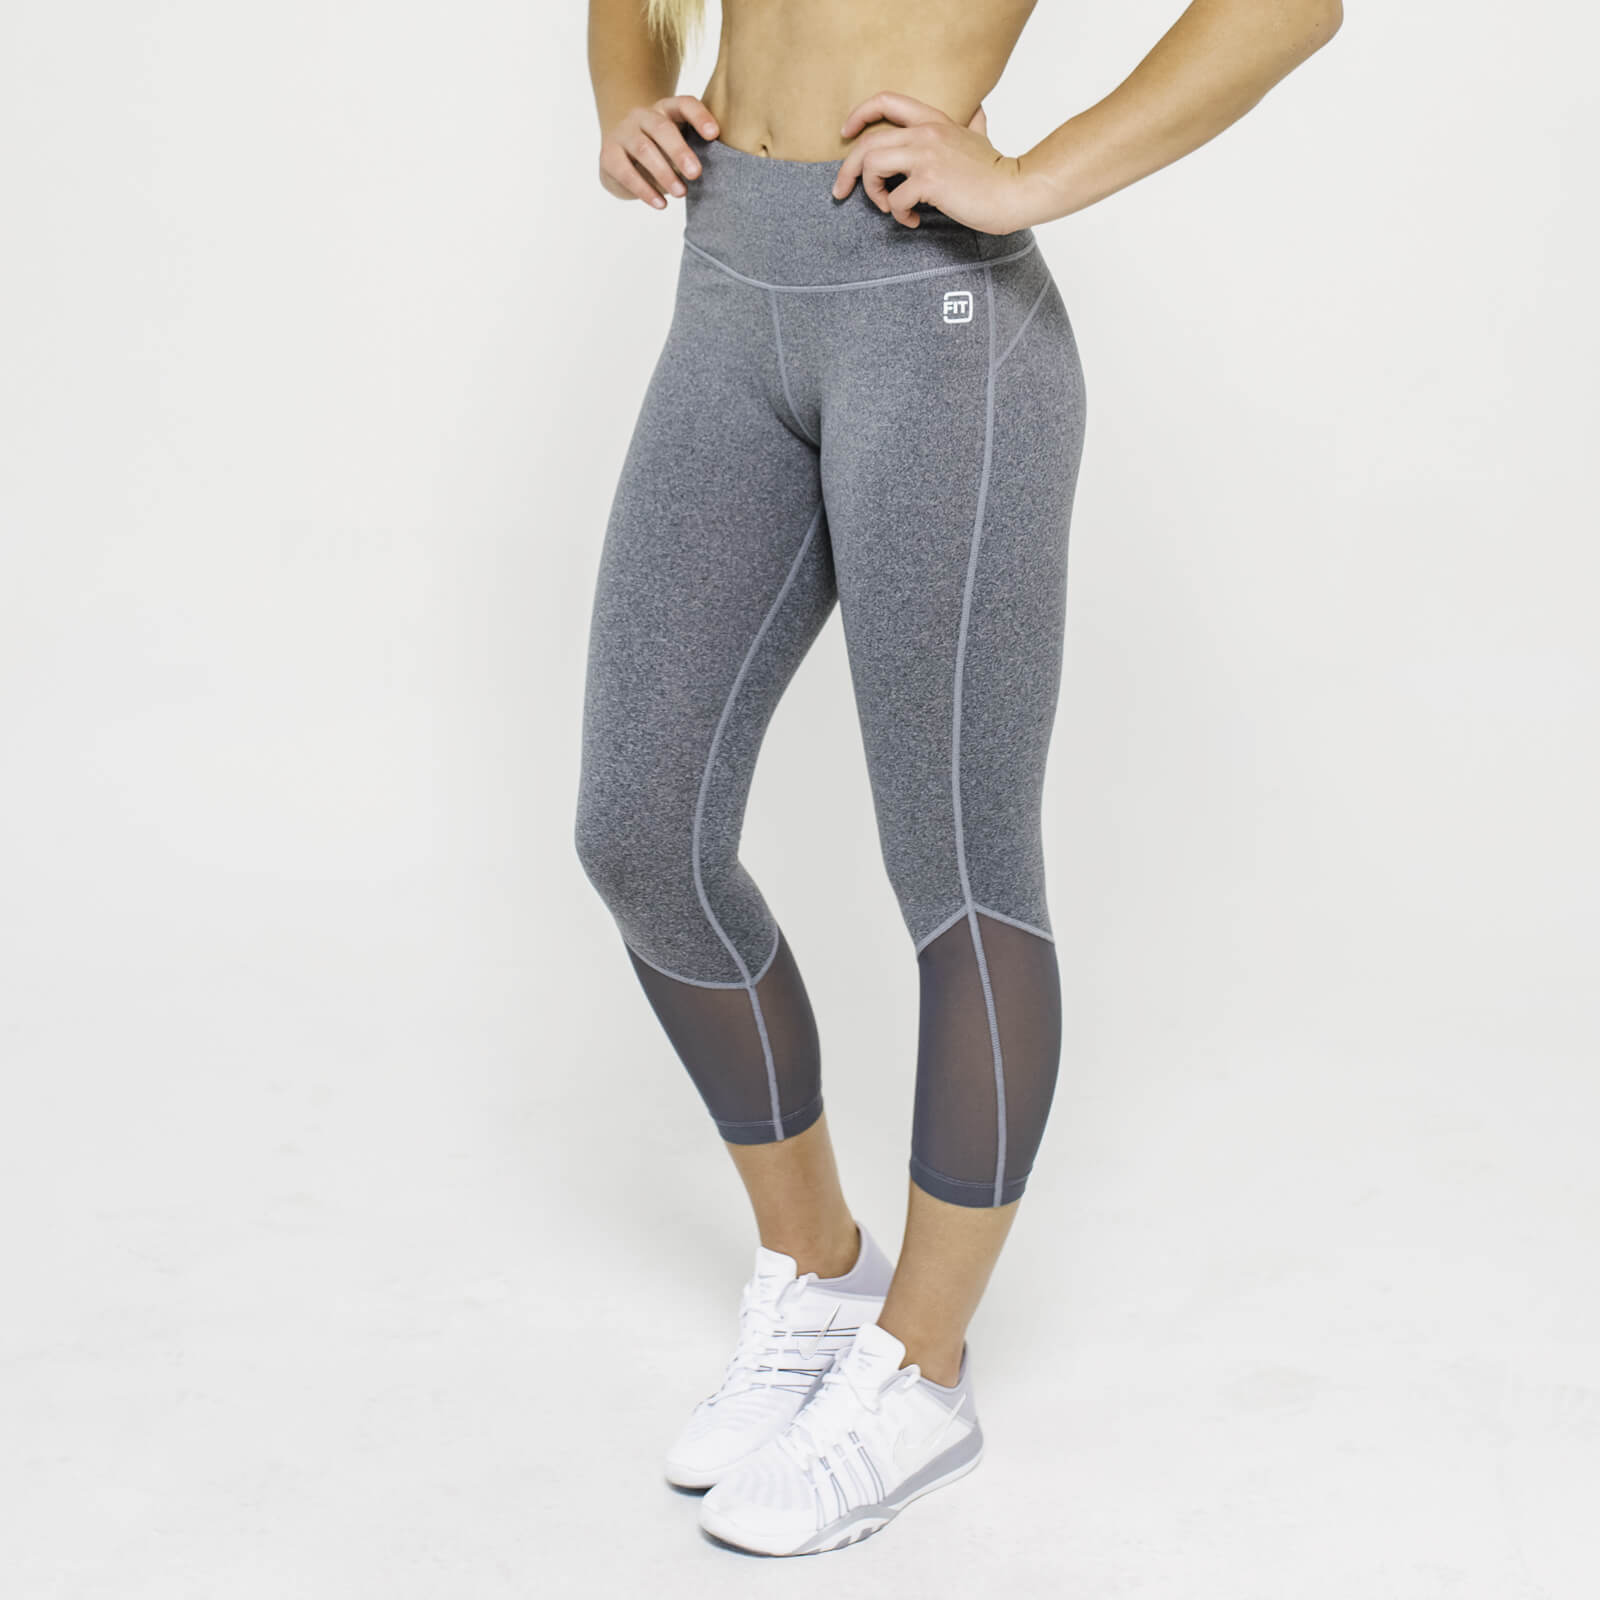 XS - IdealFit Core Capri - Grey